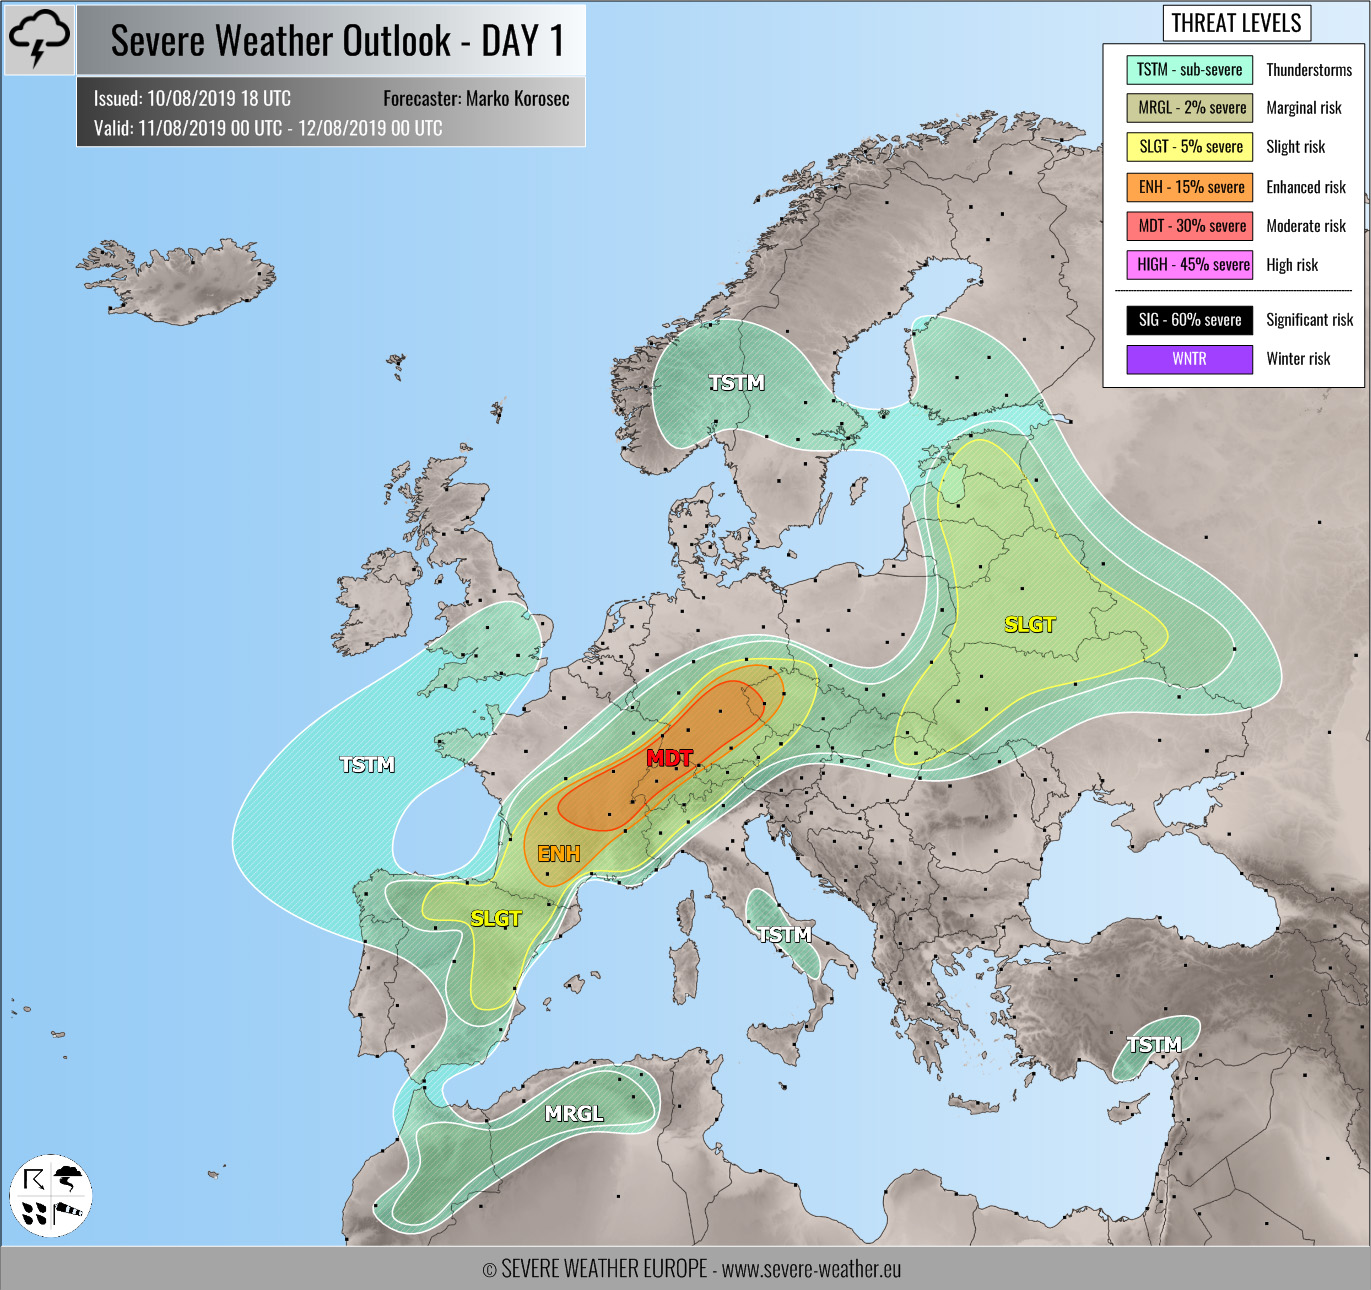 Outlook DAY 1 (valid: 11/08/2019) – Severe Weather Europe